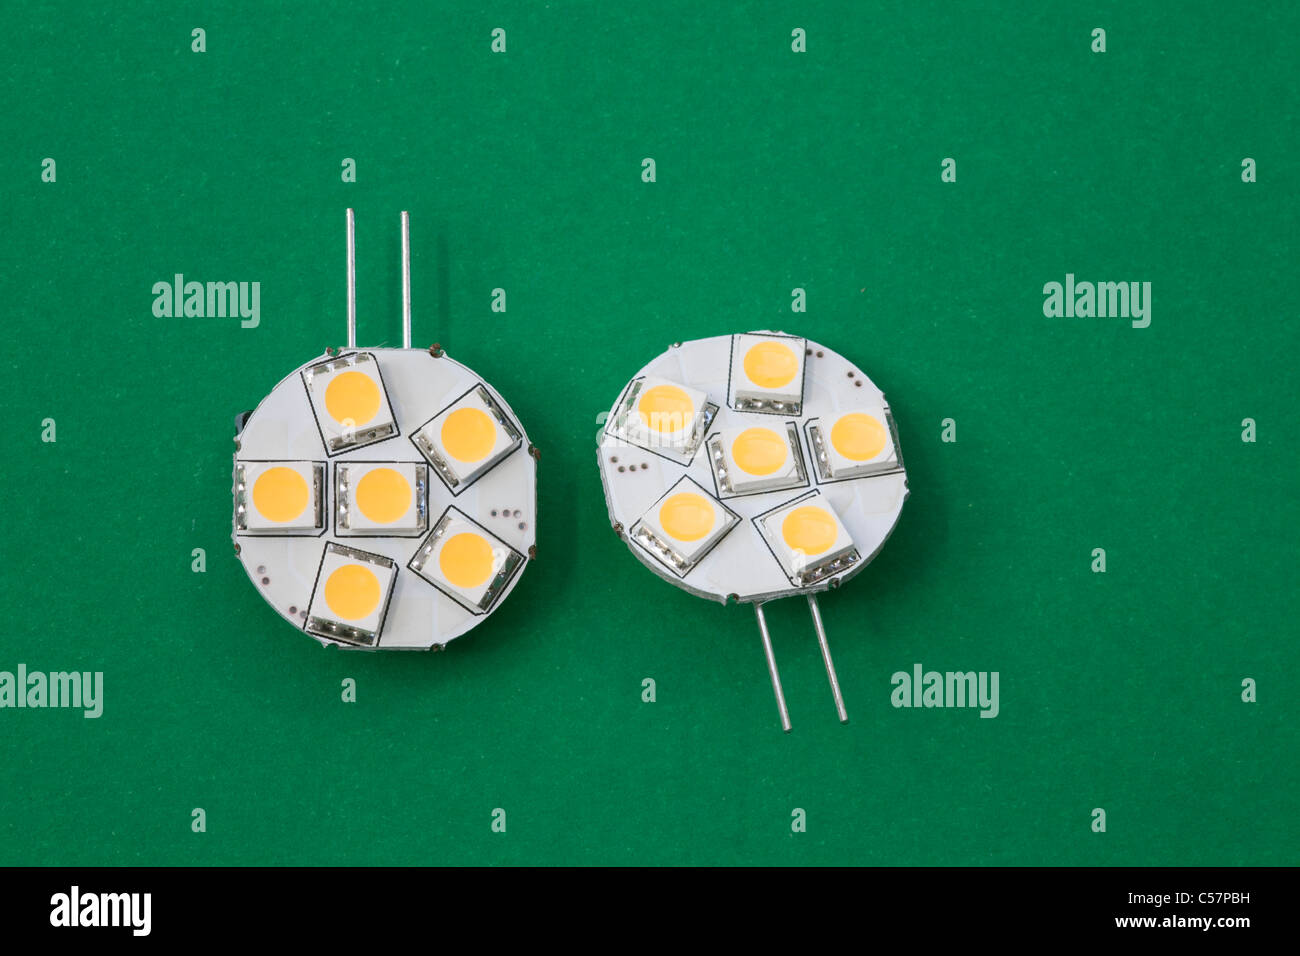 Close up two low power usage 12 volt side fitting LED lights - Stock Image